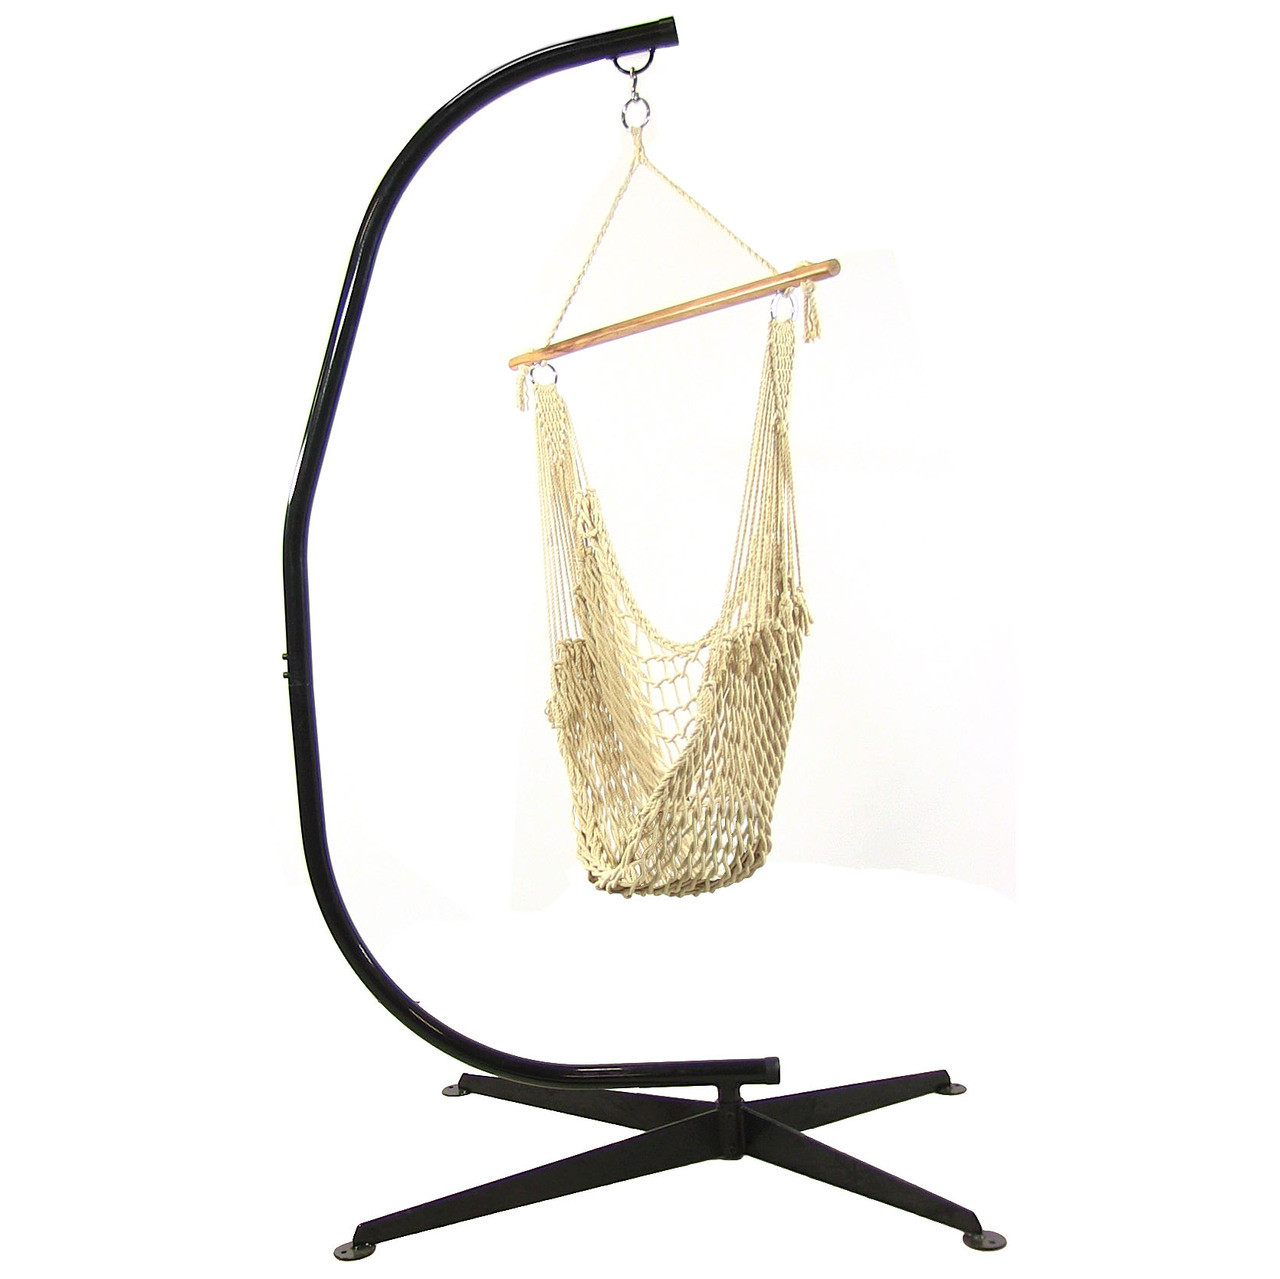 Sunnydaze Cotton Rope Hammock Chair Wood Bar C Stand Combo Natural  Picture 431